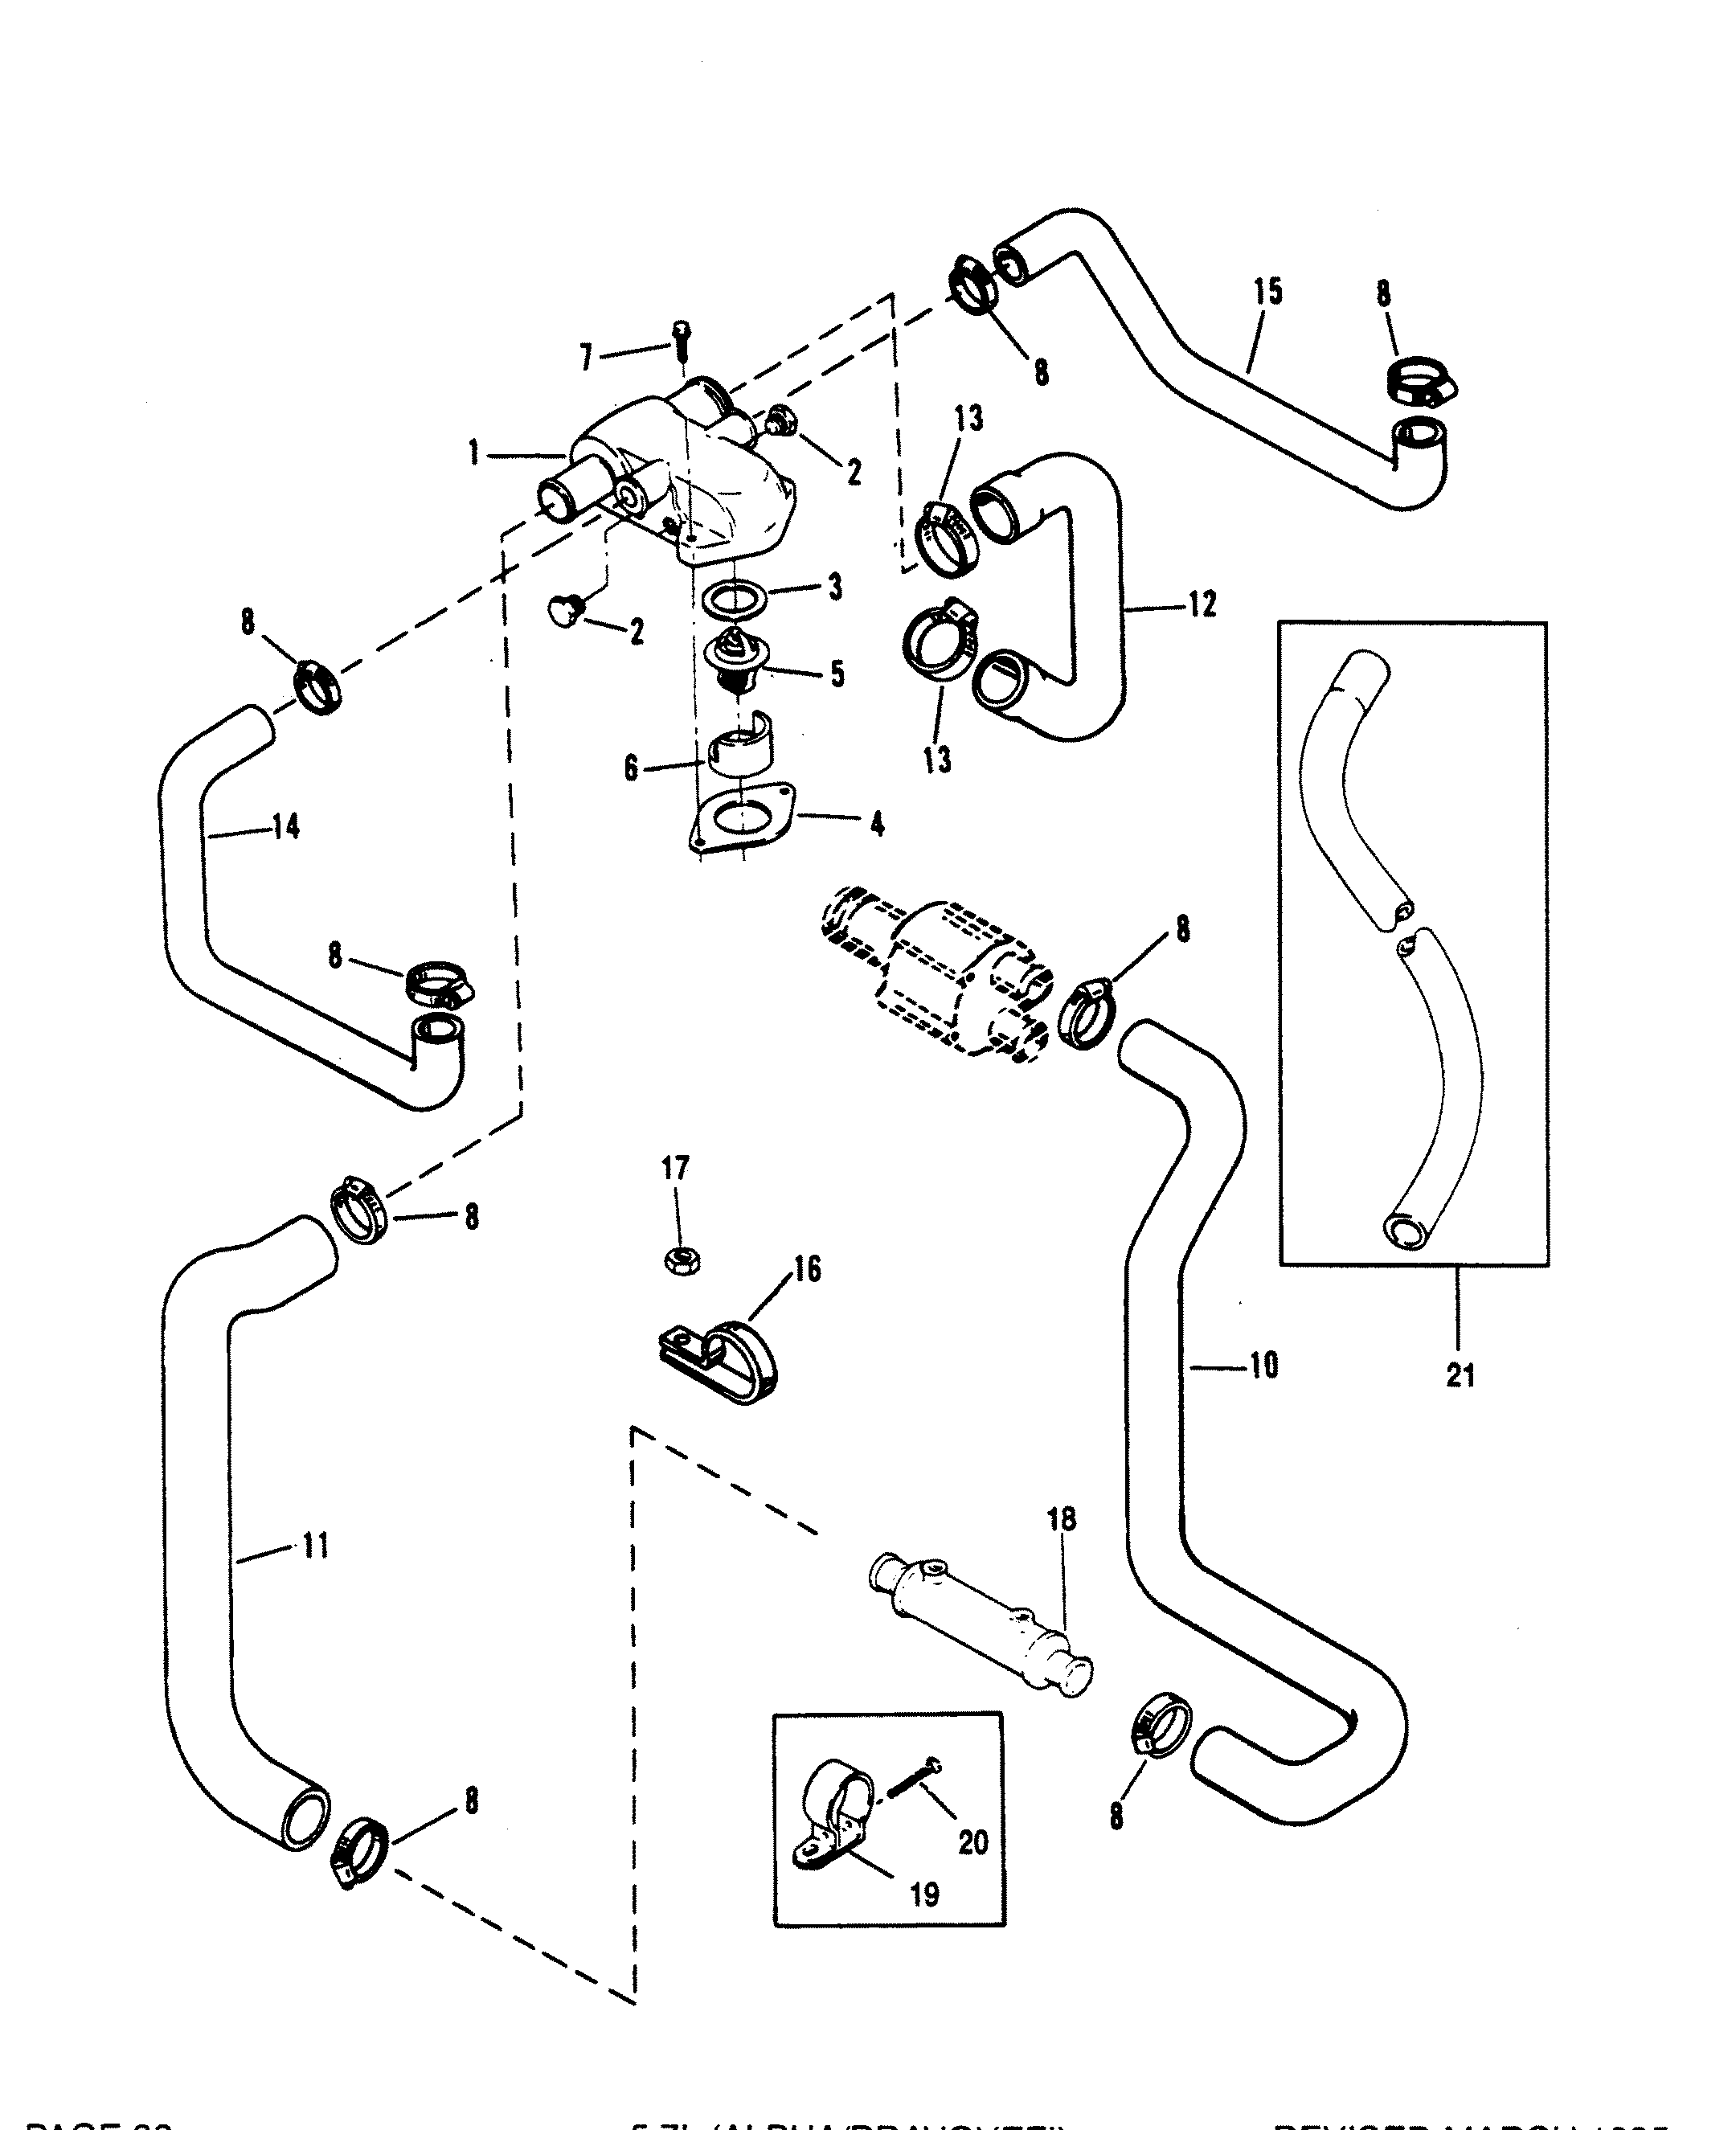 96 S10 4 3 Engine Diagrams also Nissan Versa Fuse Box Location Youtube moreover Oil Pump Replacement Cost besides Honda Odyssey Engine Parts Diagram additionally Timing Belt Serpentine Belt Diagrams. on nissan altima starter replacement